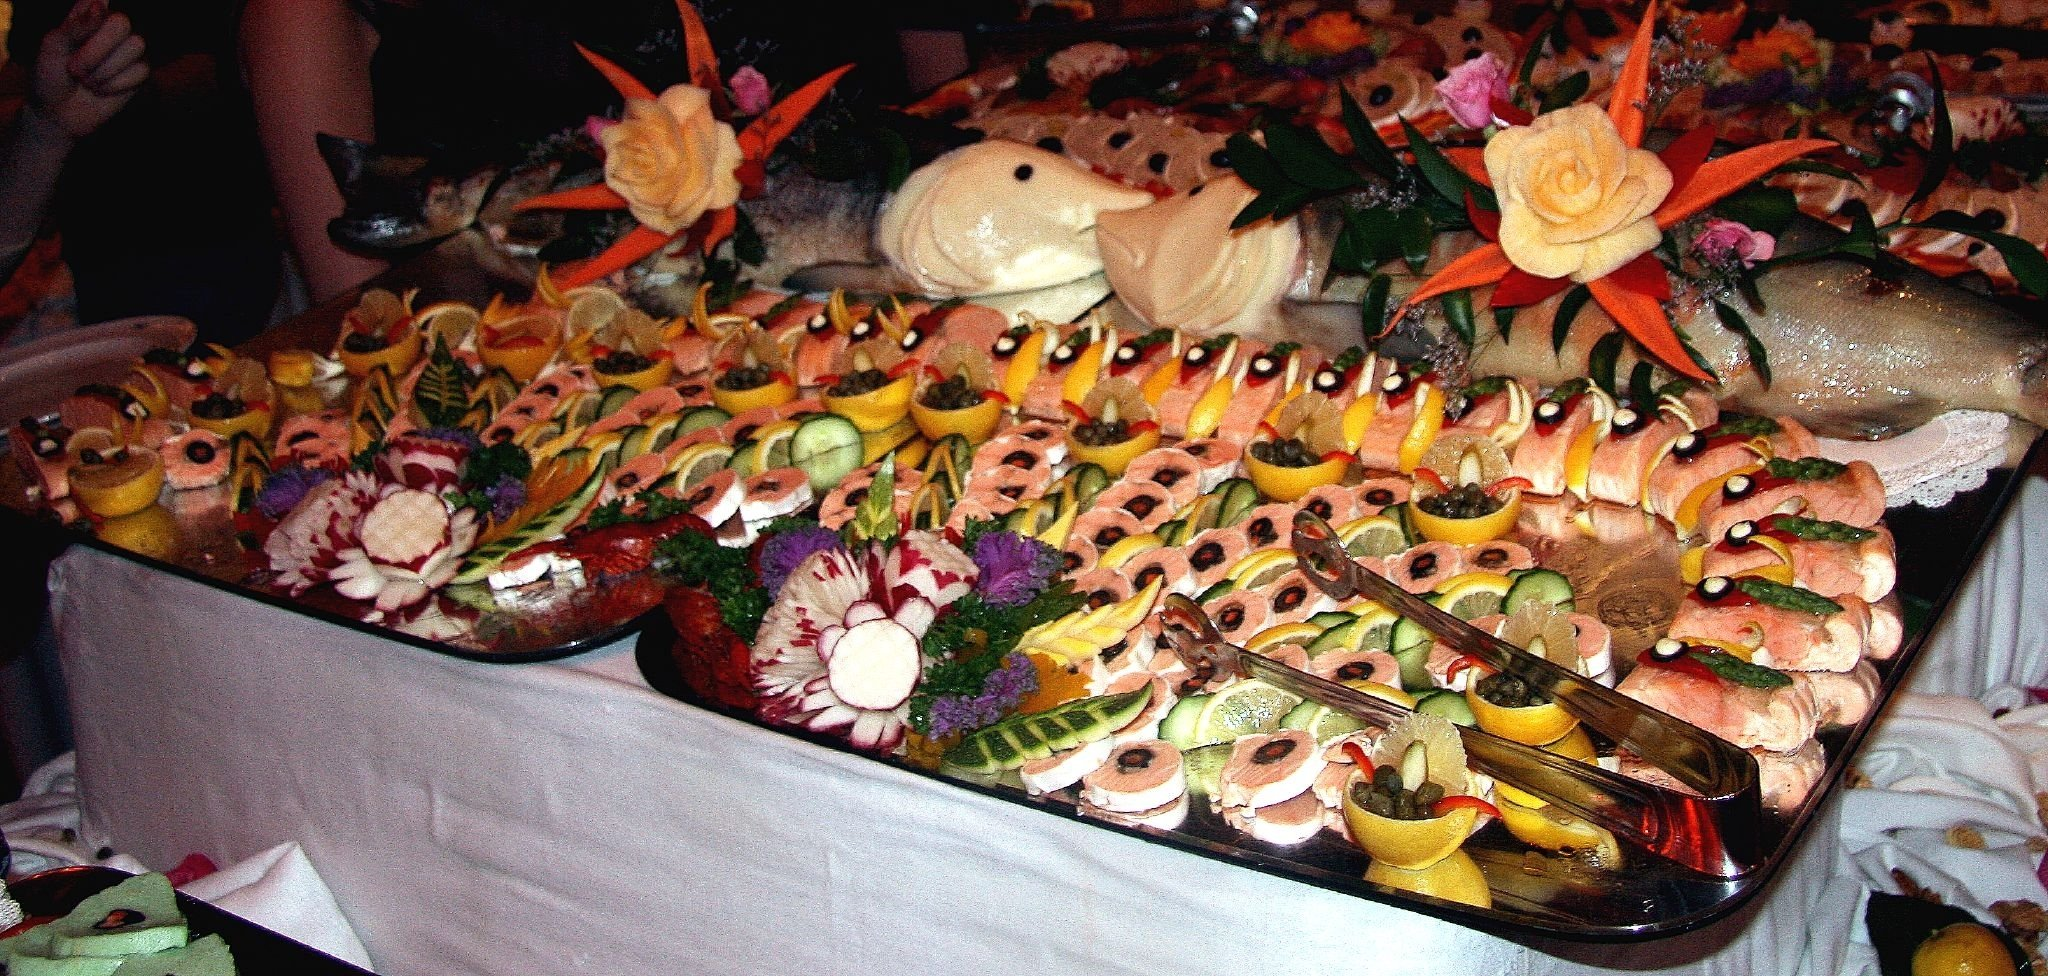 file:christmas buffet - wikimedia commons